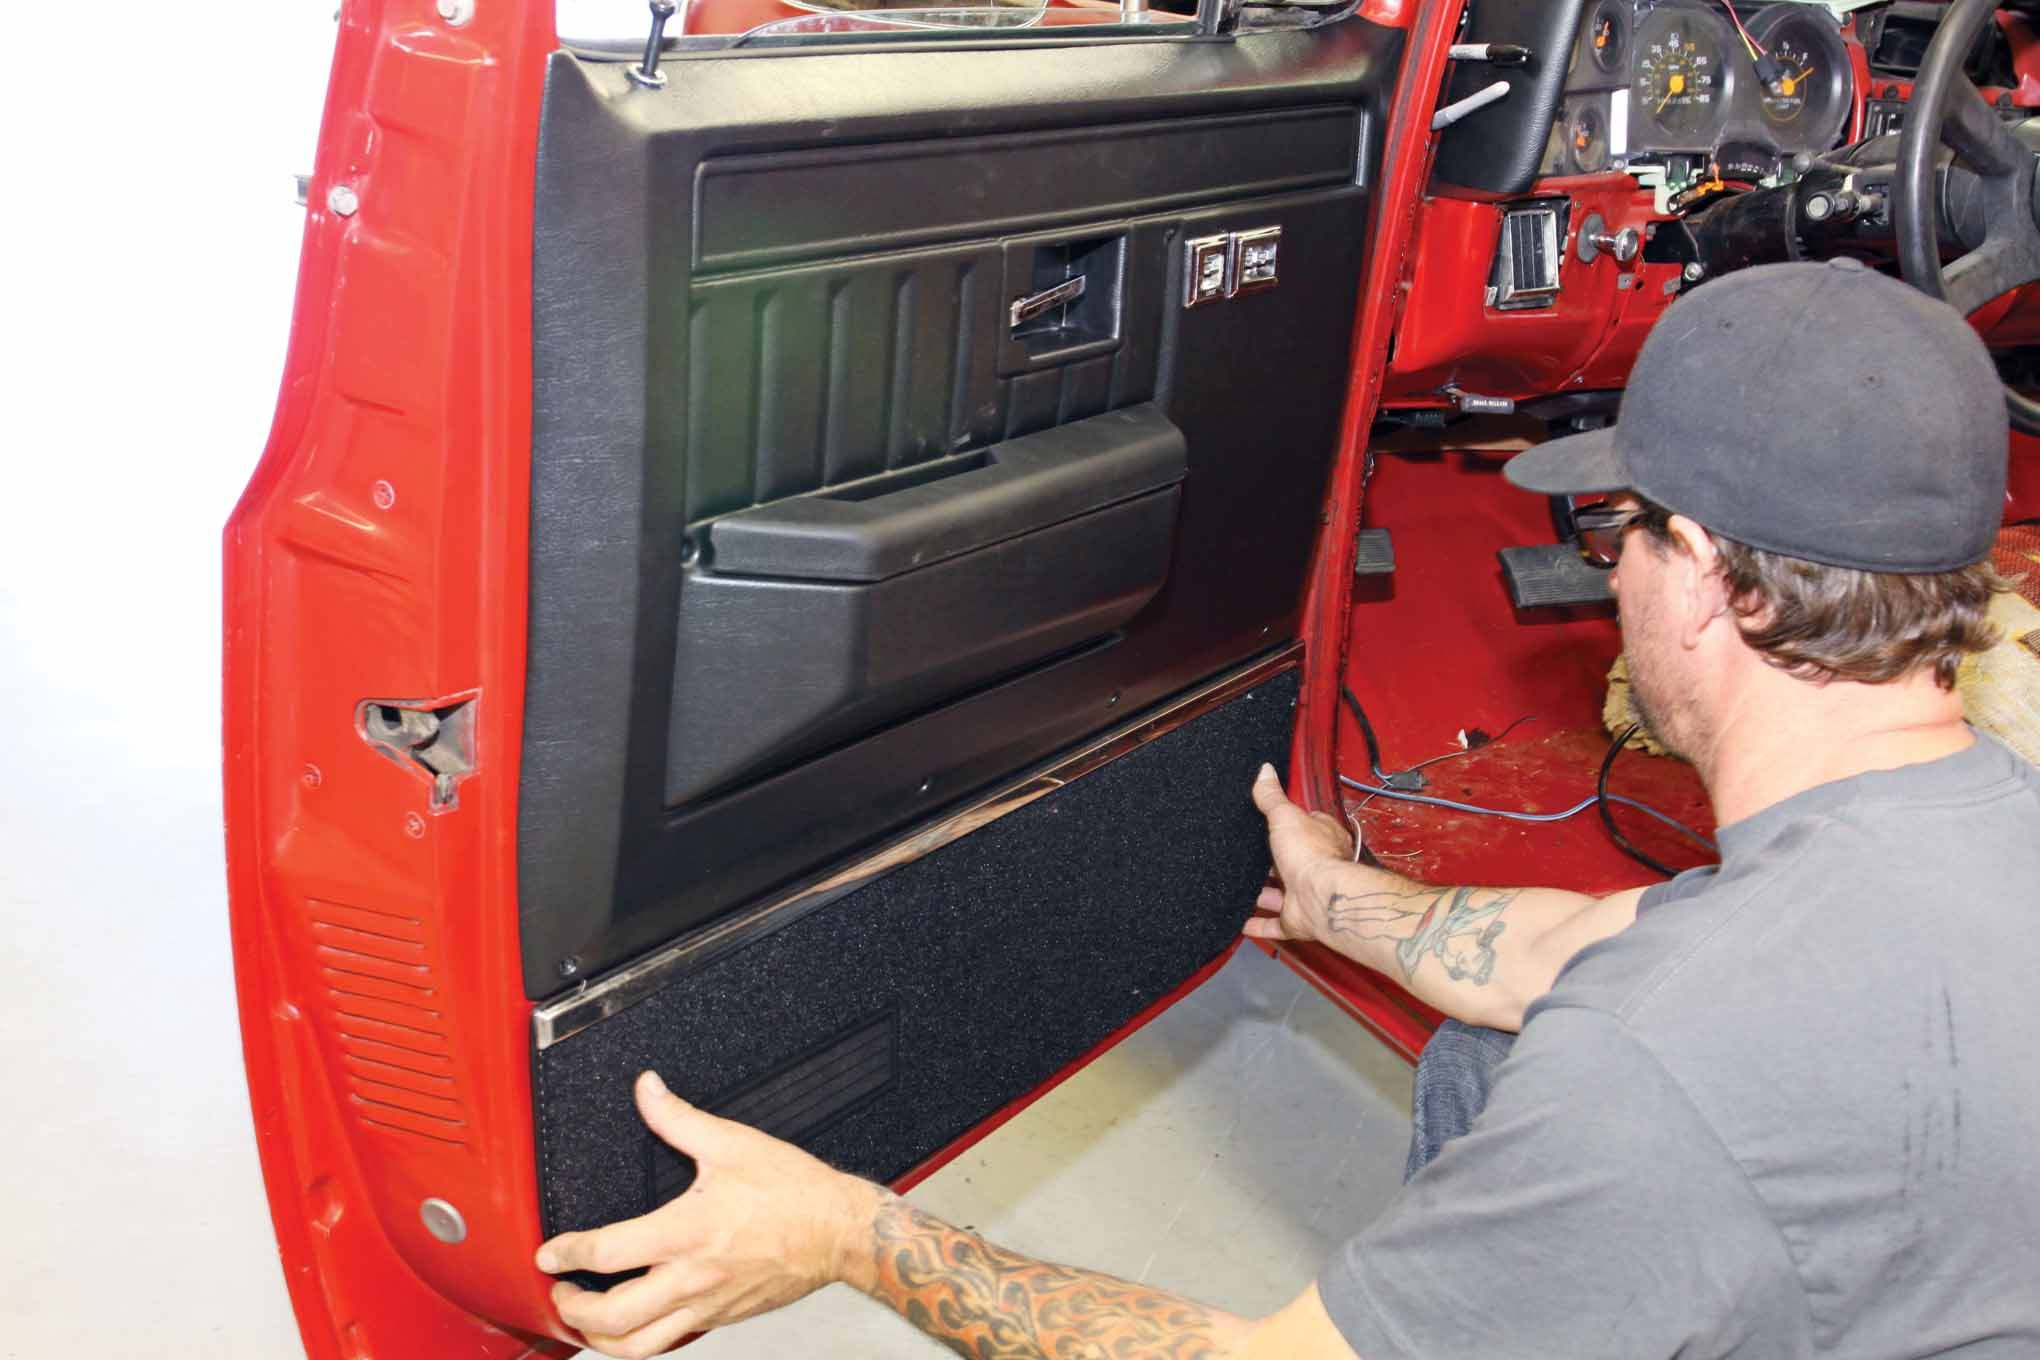 New Door Panels Make A Major Improvement In Appearance The Old Ones Unscrewed And Popped Up Away From The Door The New Door P Lmc Truck Truck Interior Trucks